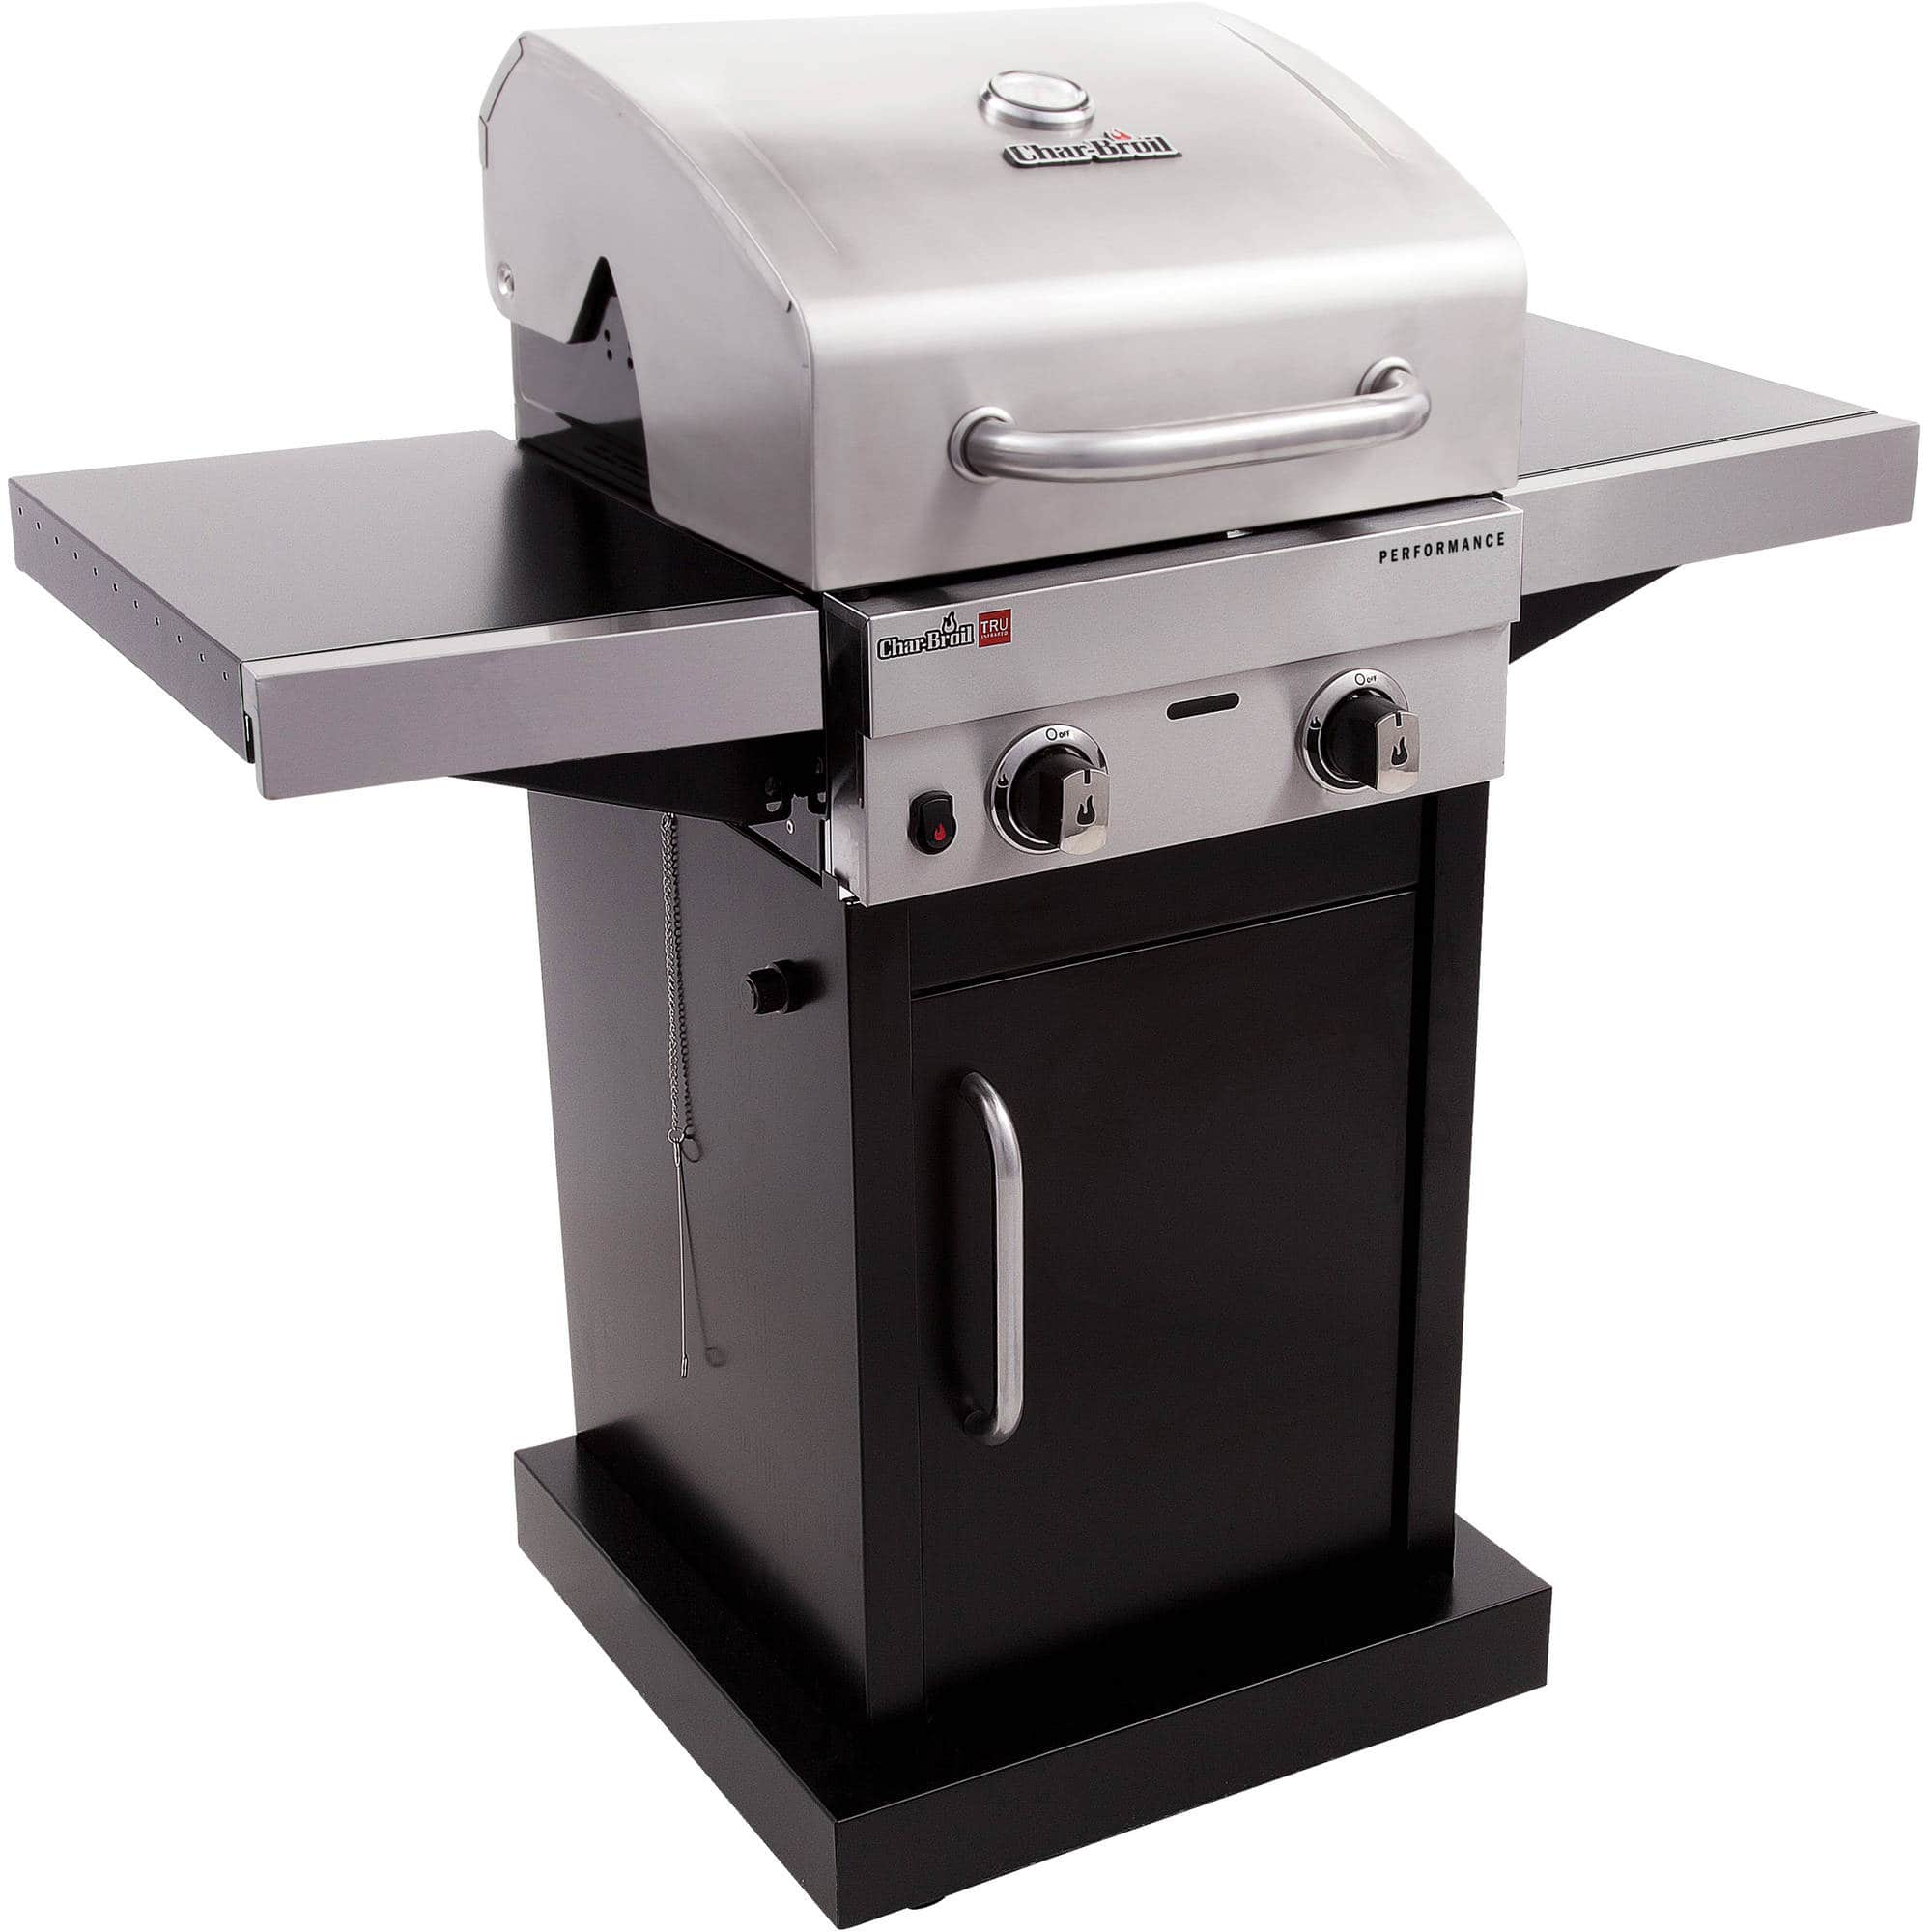 WM B&M Char Broil TRU Infrared and gas grill reg $229 clearanced